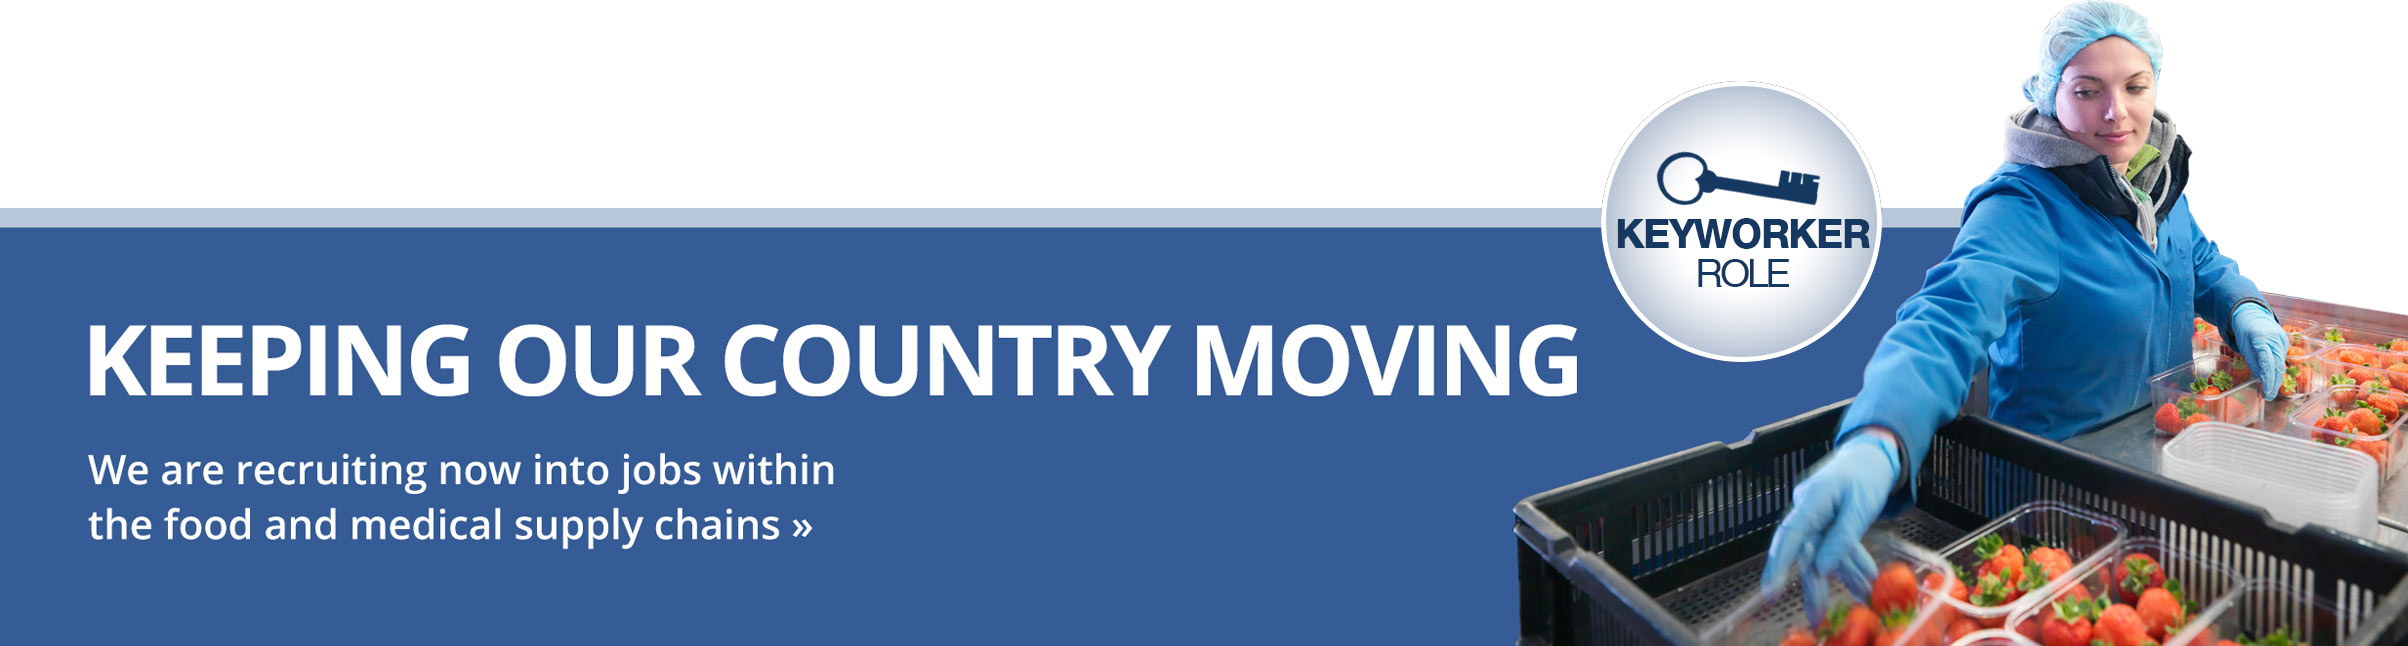 Keeping our Country Moving